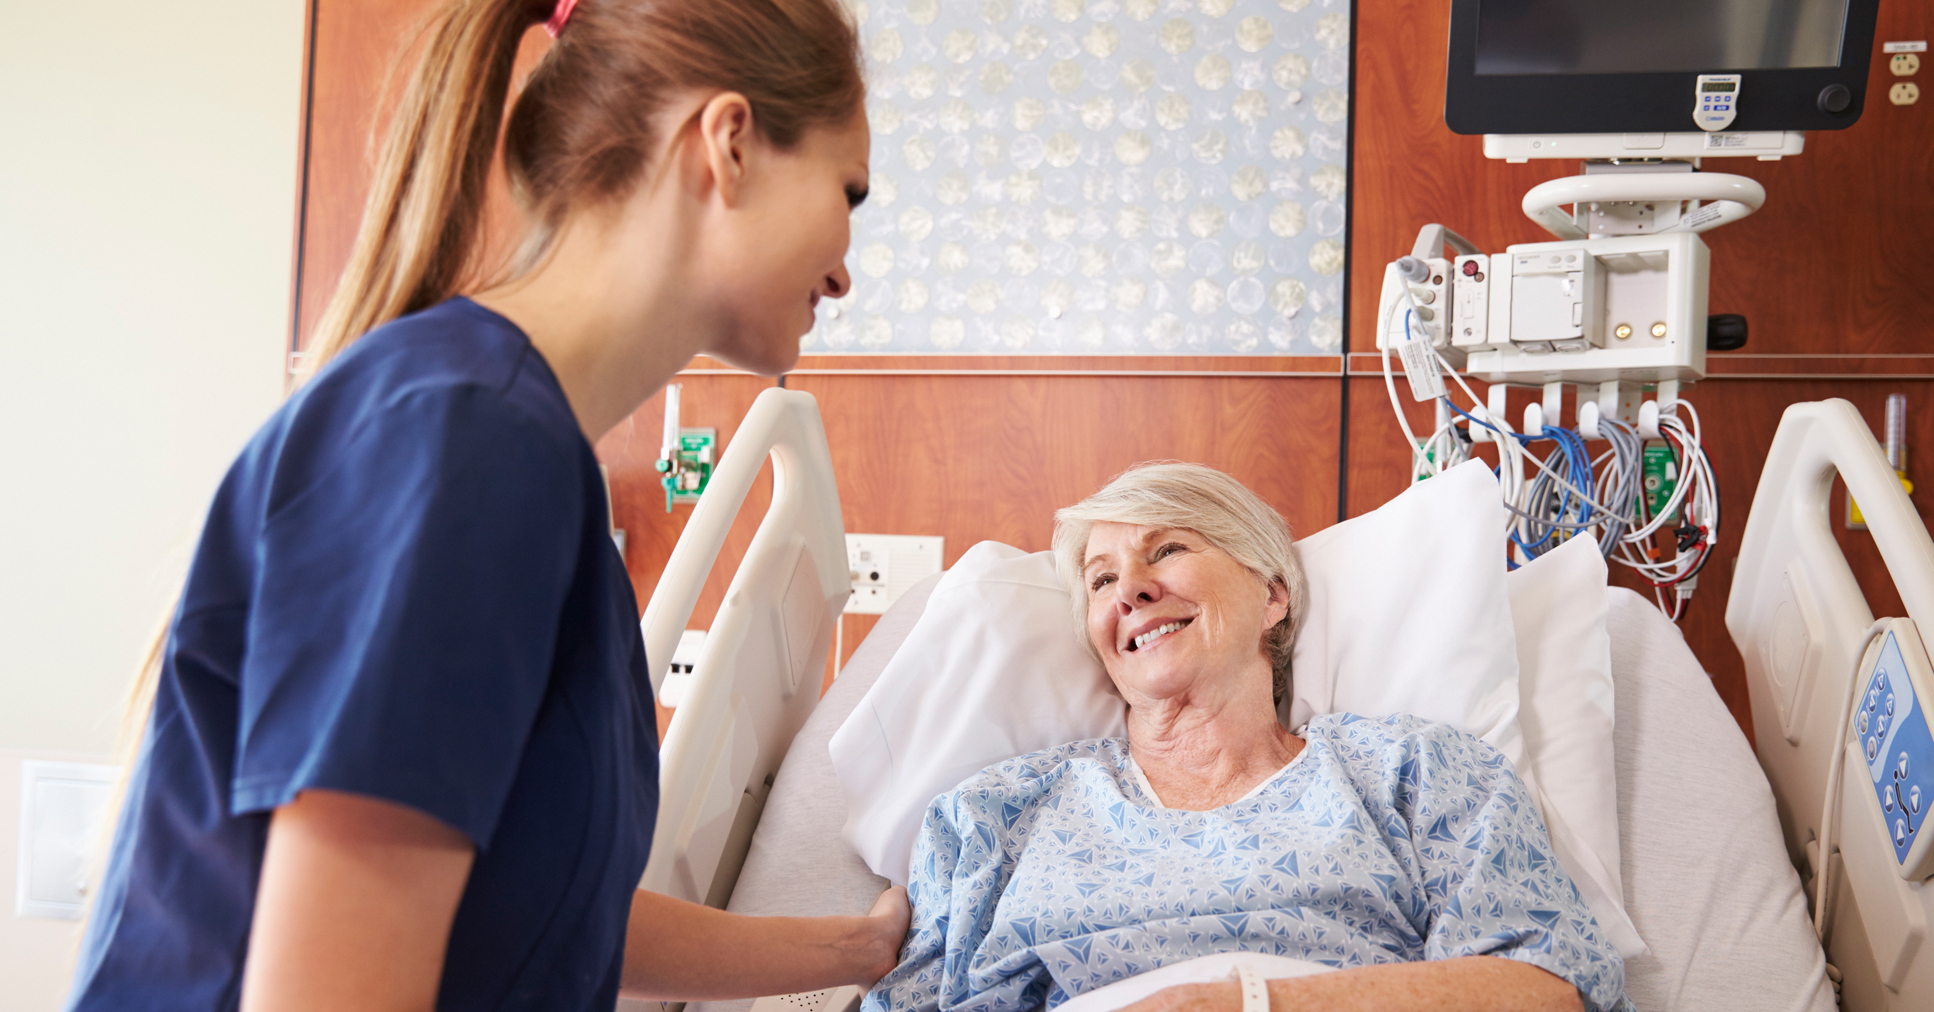 A female nurse in dark blue scrubs tends to an older femail patient in a hospital bed and holds her hand